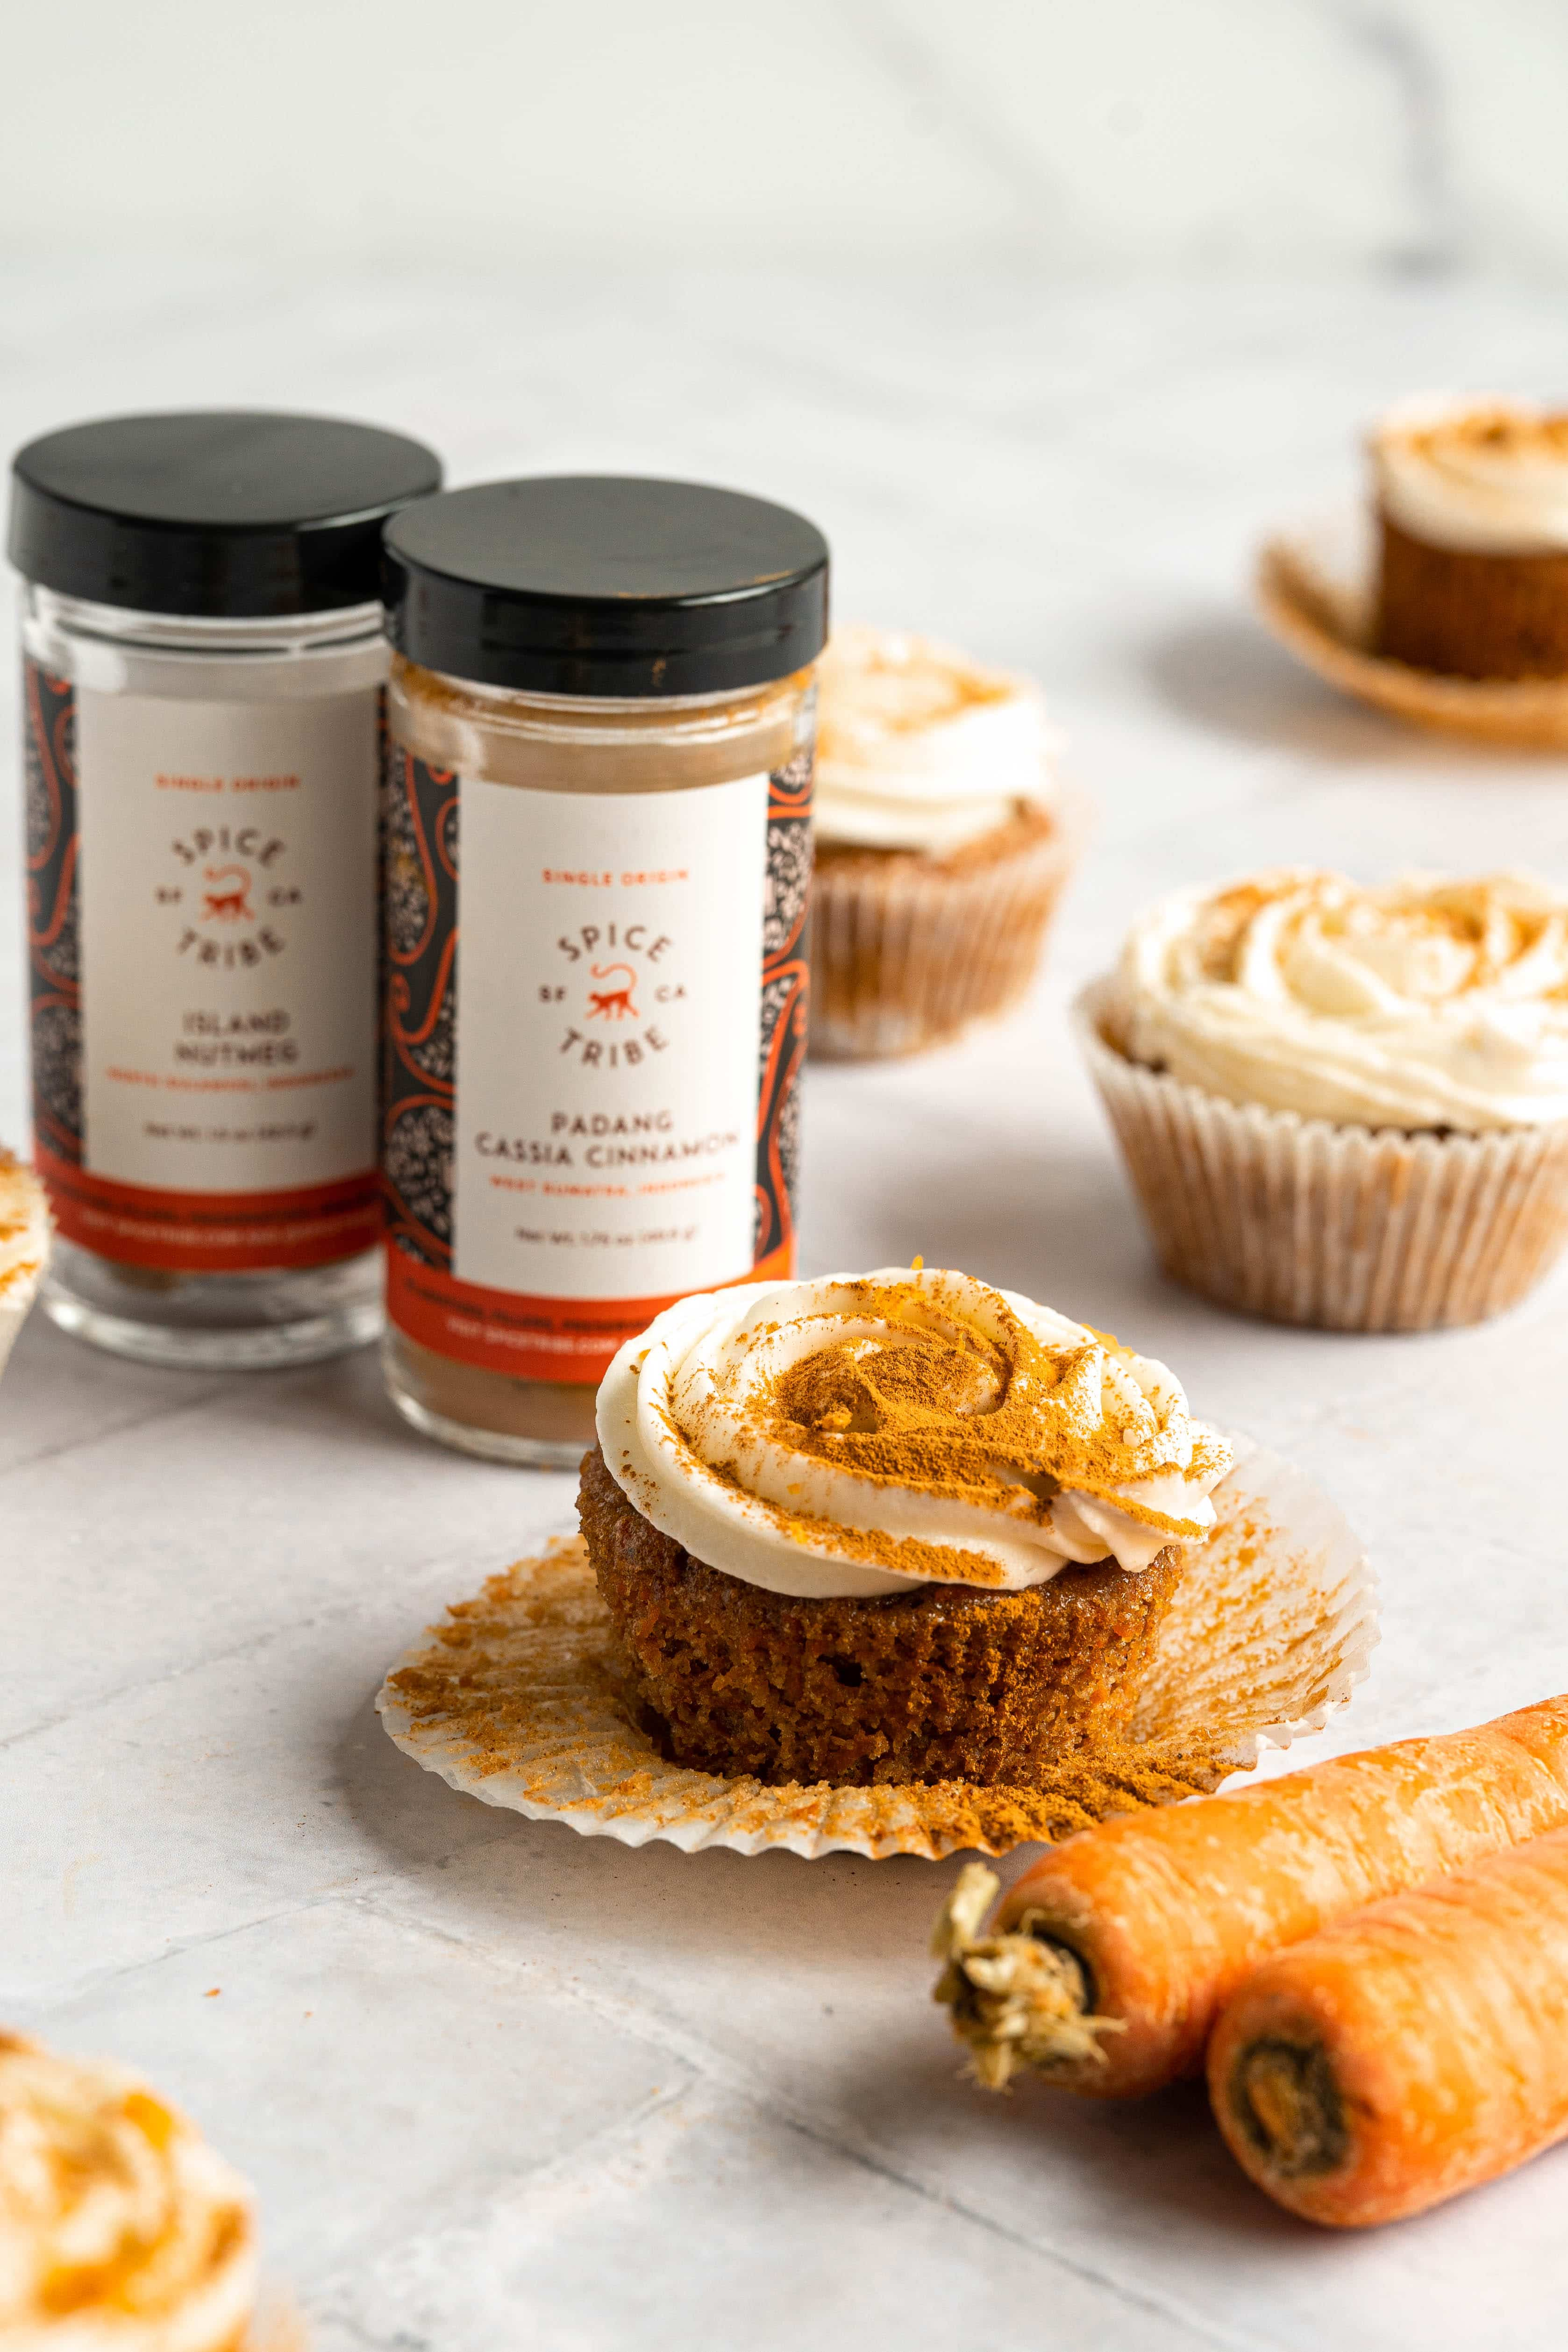 A carrot cupcake next to carrots and spices